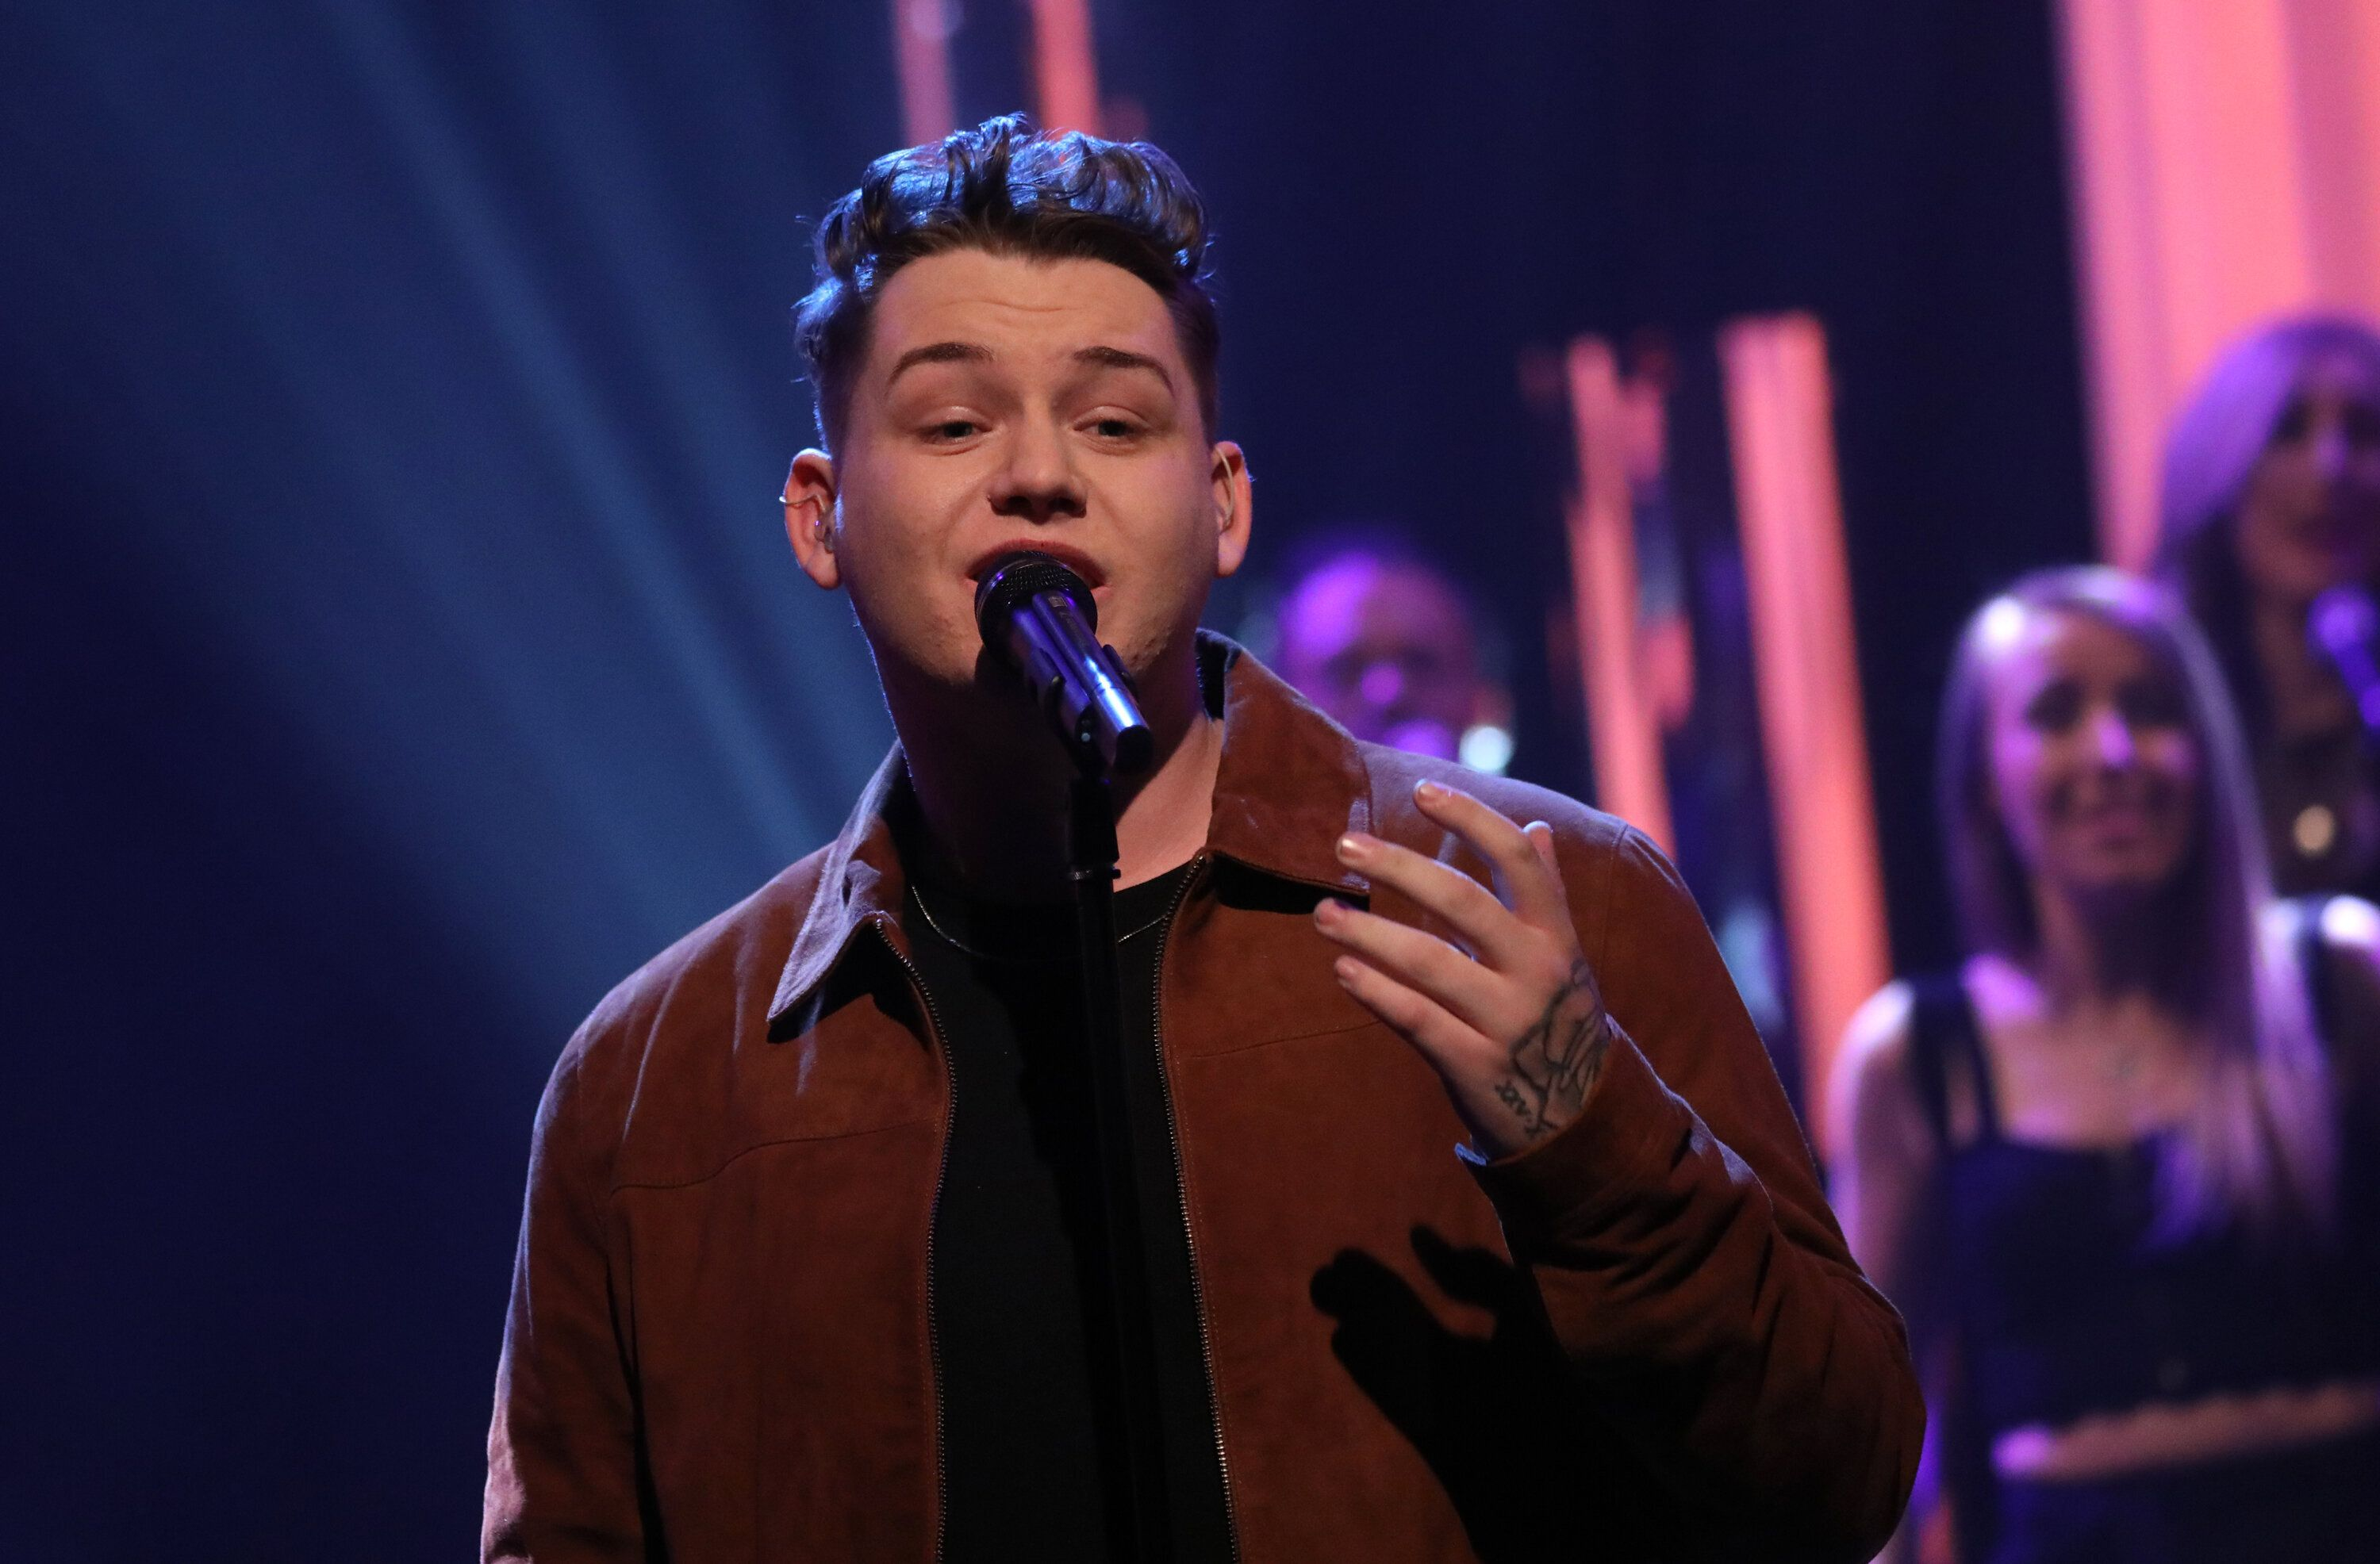 Michael Rice performing during the filming for the Graham Norton Show at BBC Studioworks 6 Television Centre, Wood Lane, London, to be aired on BBC One on Friday evening.